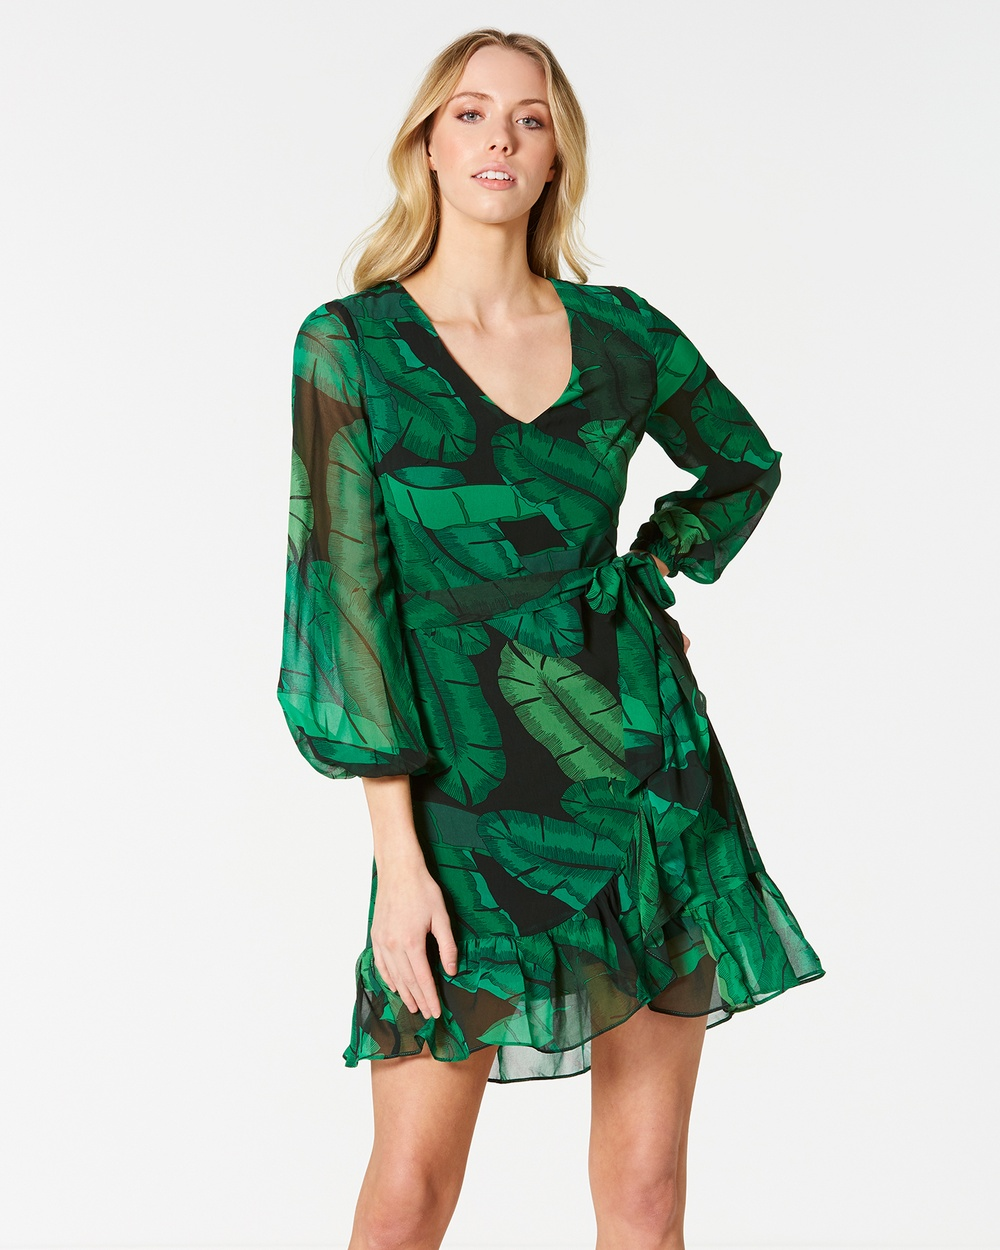 Stella Palm Springs Dress Printed Dresses Print Palm Springs Dress